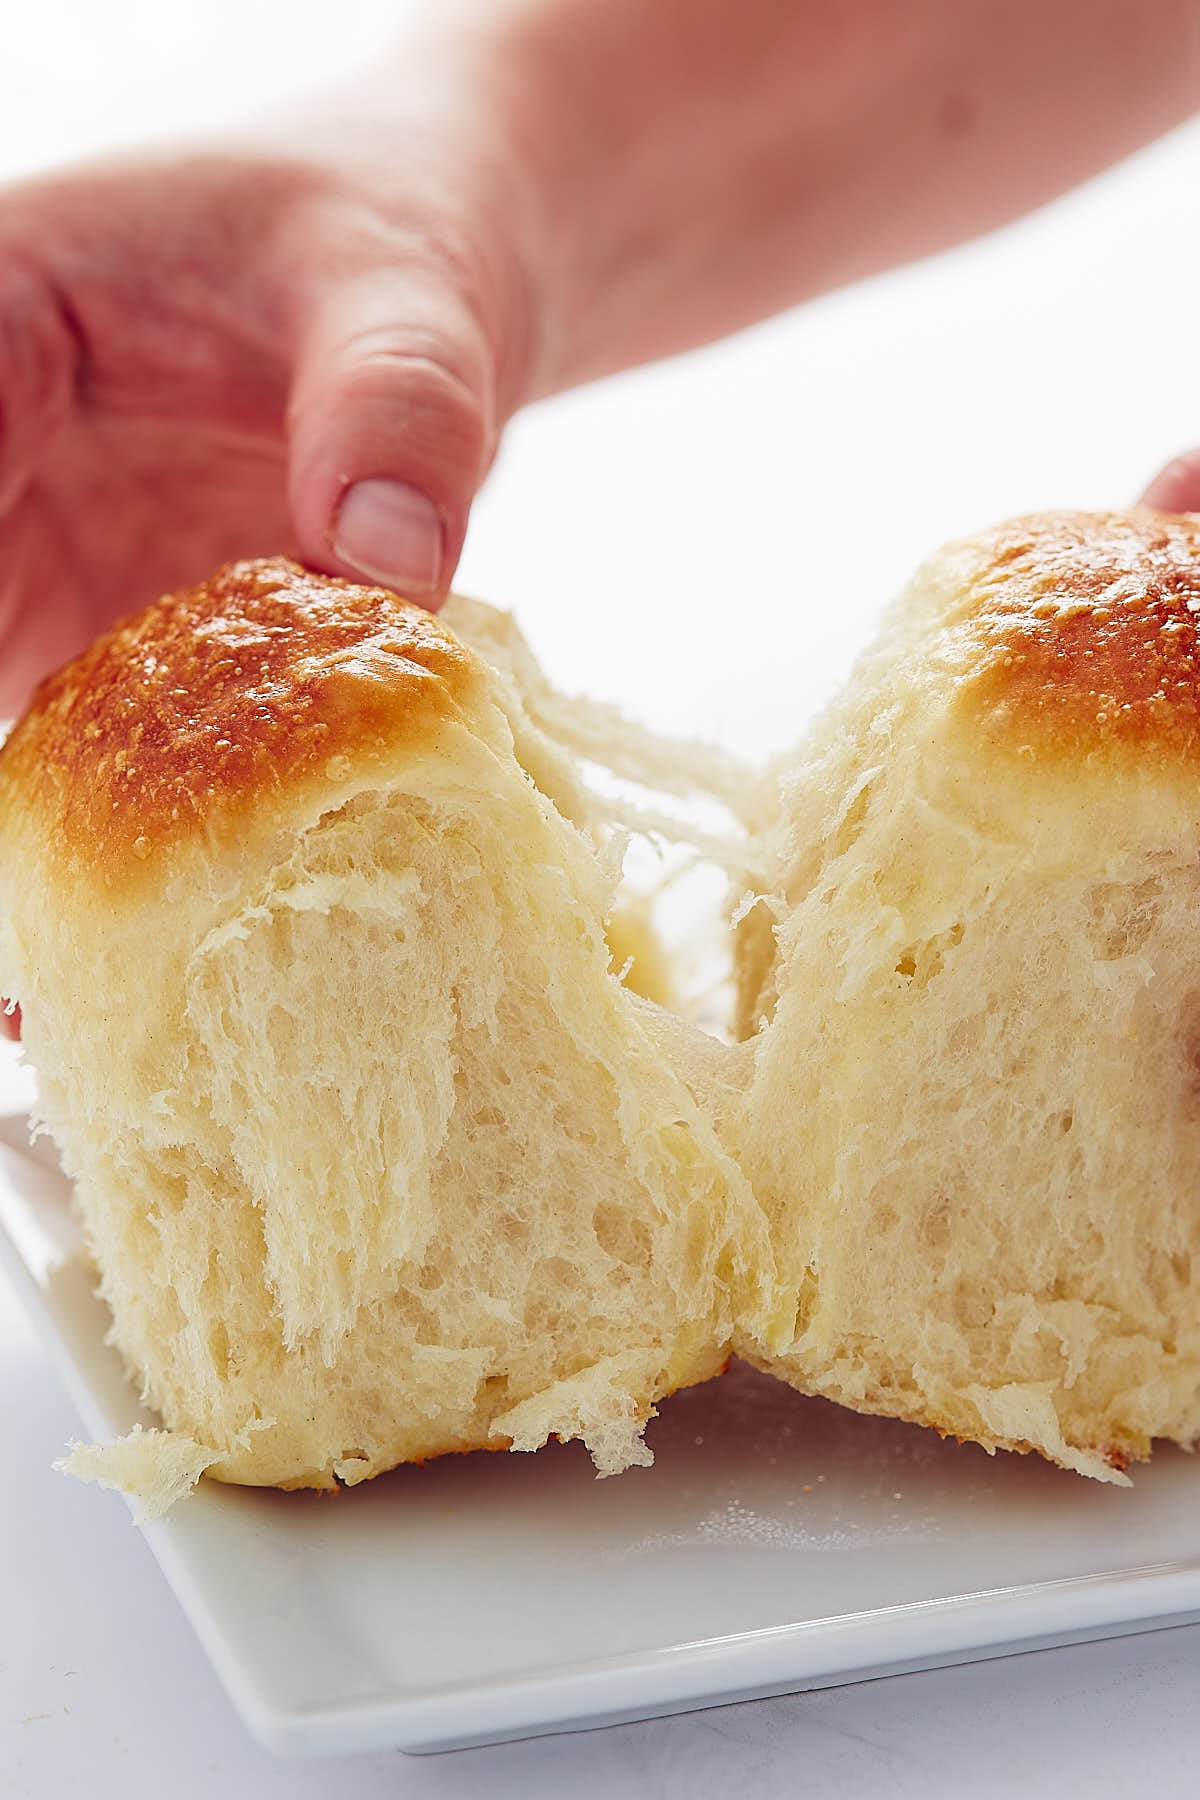 My Vanishing Yeast Rolls recipe. These exceptionally flavorful yeast rolls are very Soft, moist and flaky. They melt in your mouth and have a tendency to vanish in the blink of an eye, just like those good old Vanishing Oatmeal Cookies, remember them? Make sure to make the full batch. Or two. | ifoodblogger.com #rolls #yeastrolls #dinnerrolls #dinnerbread